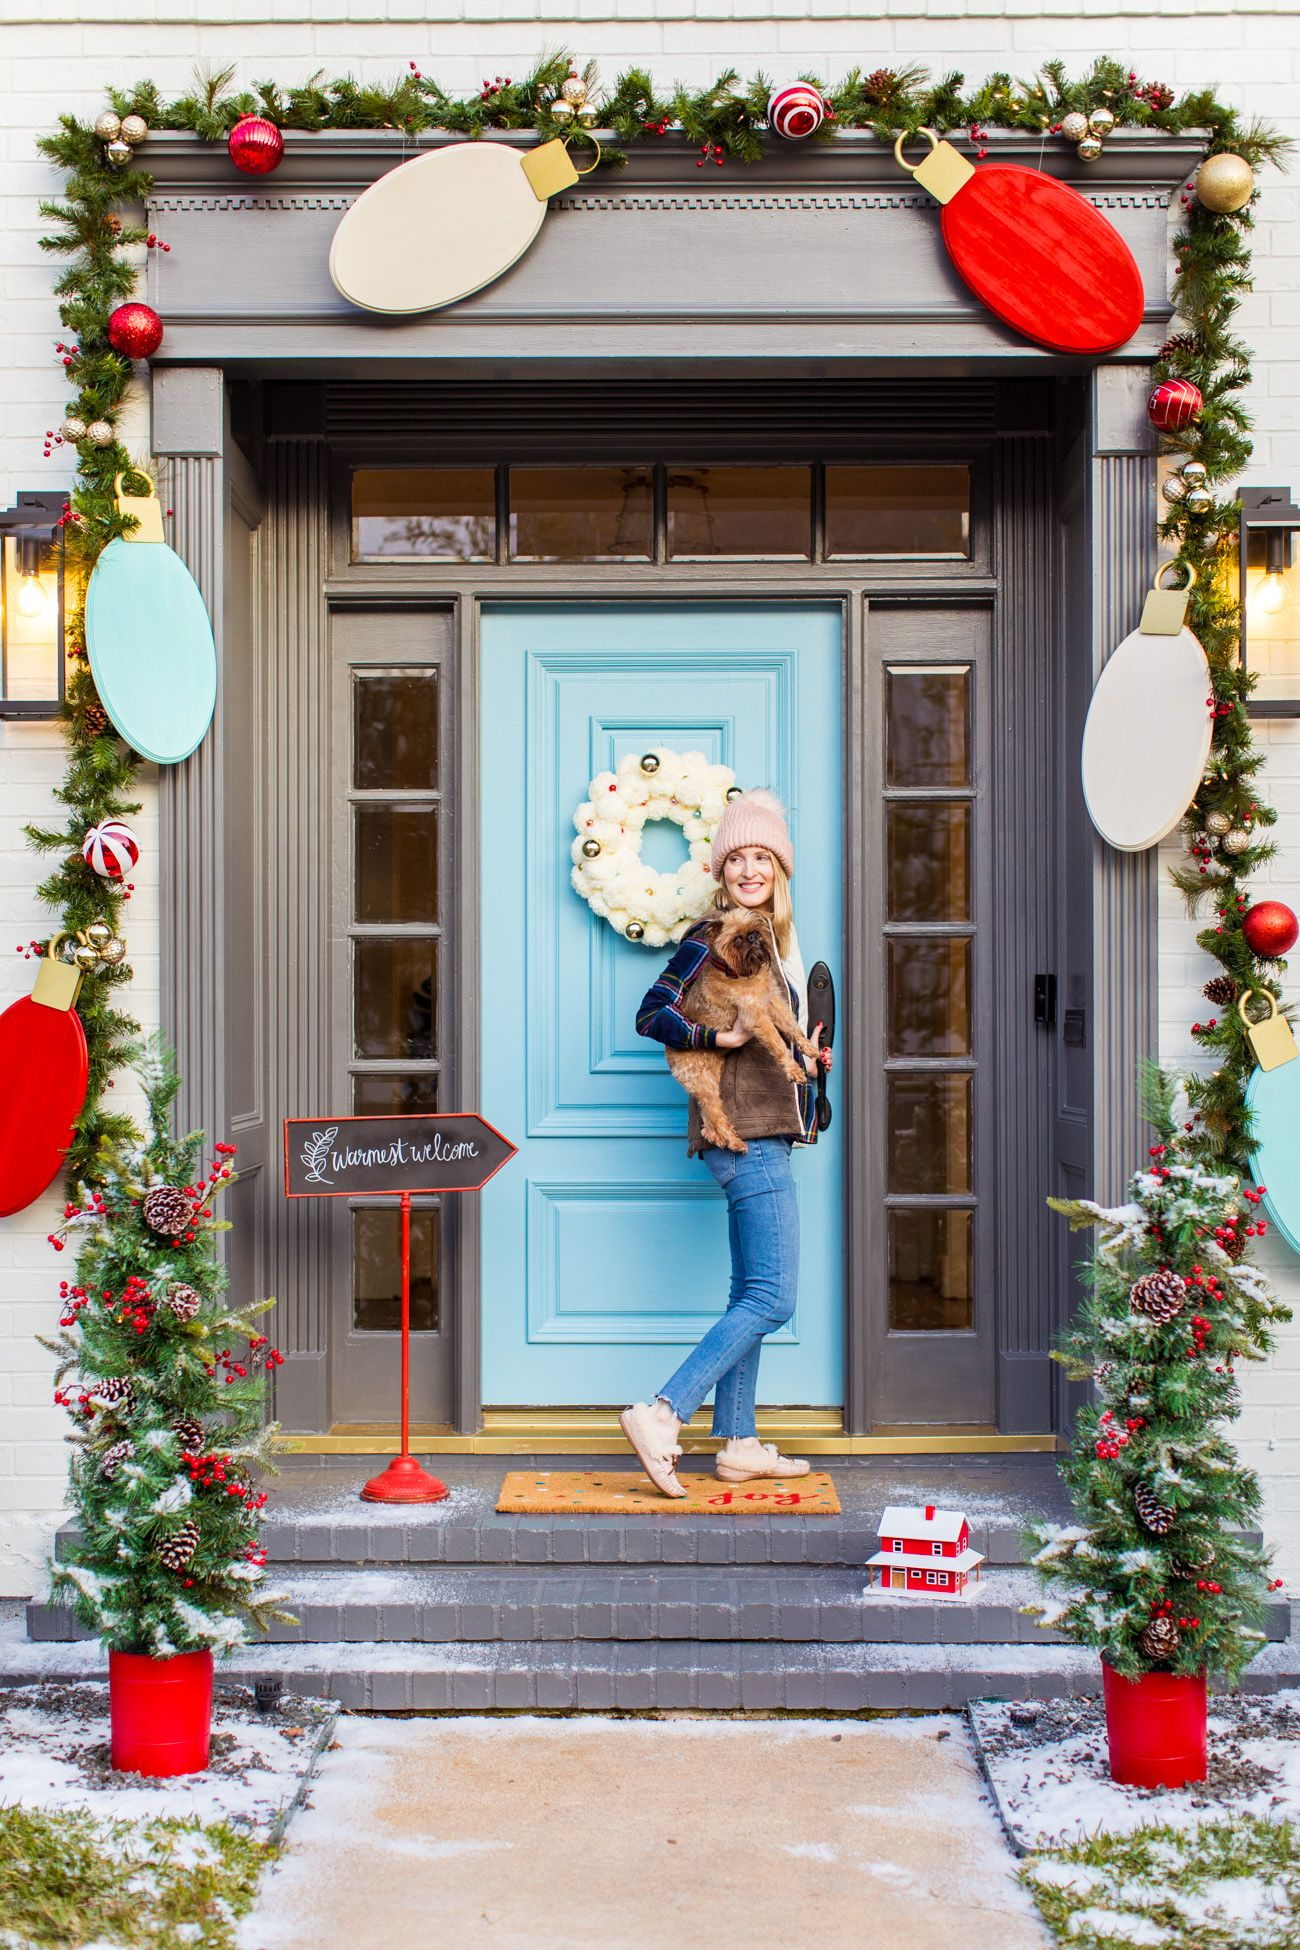 Welcome Home To The Cutest Holiday Front Door Jumbo Lights Outdoor Diy Christmas Decorations By Top Houston Lifestyle Blogger Ashley Rose Of Sugar Cloth